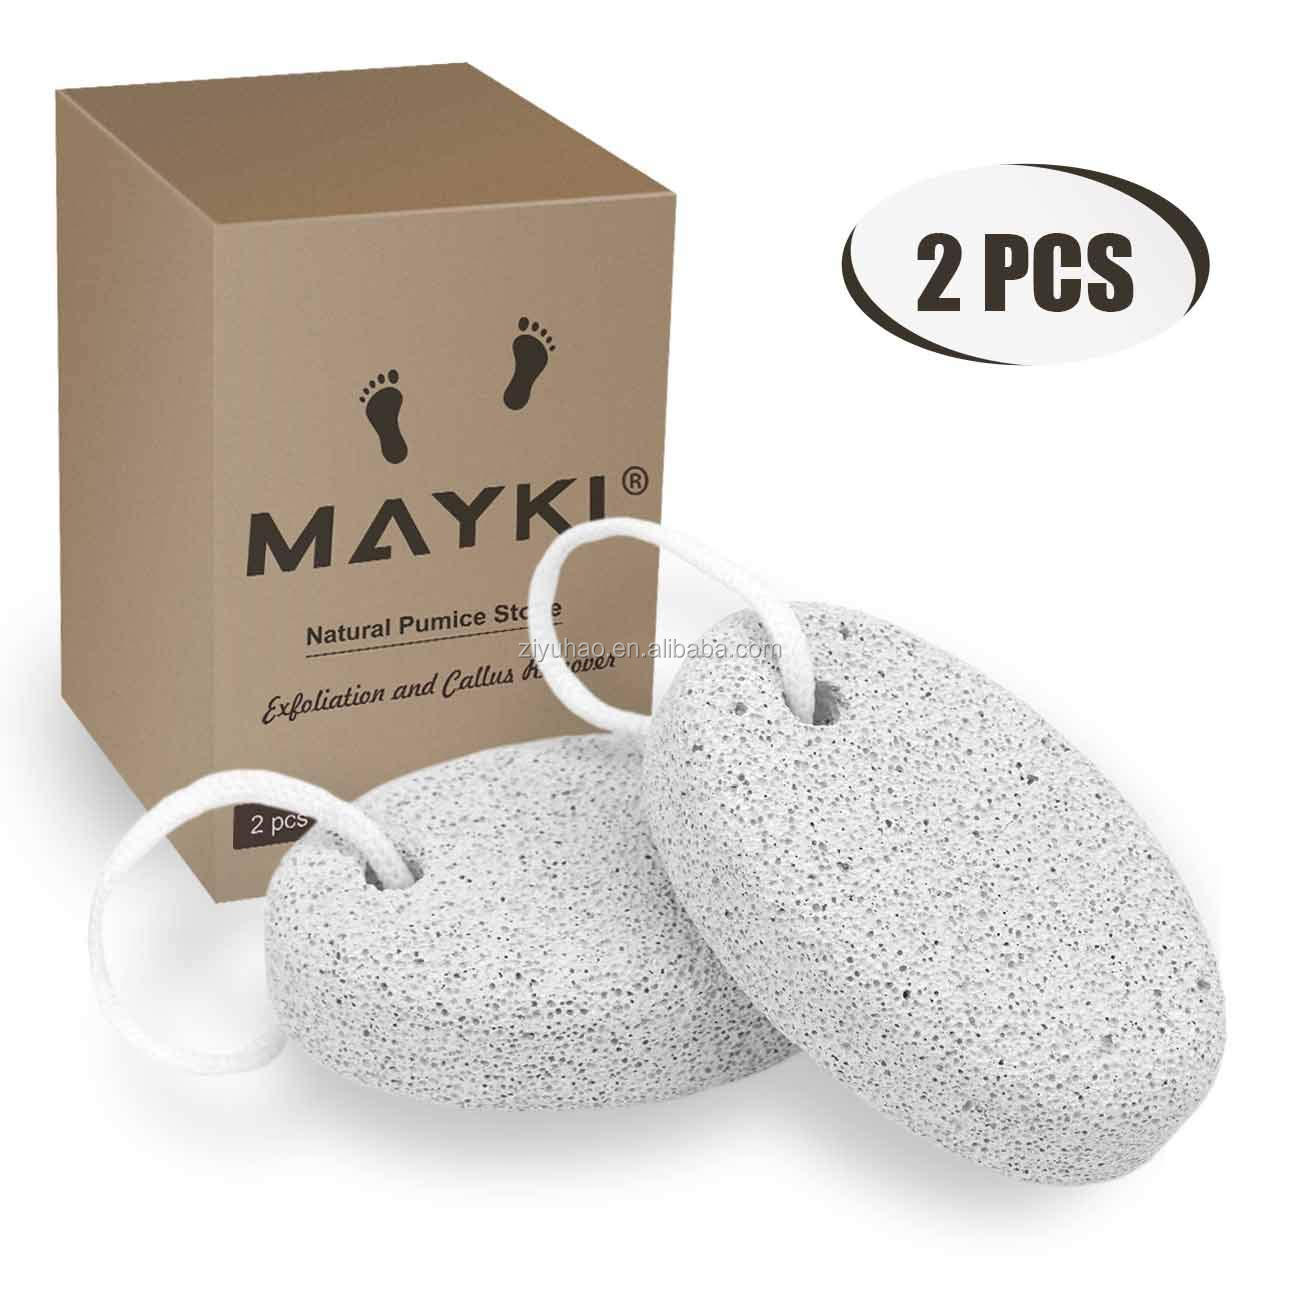 Pumice Stone 2 Pcs, Natural Lave Pumice Stone for Feet/Hand, Small Callus Remover/Foot Scrubber